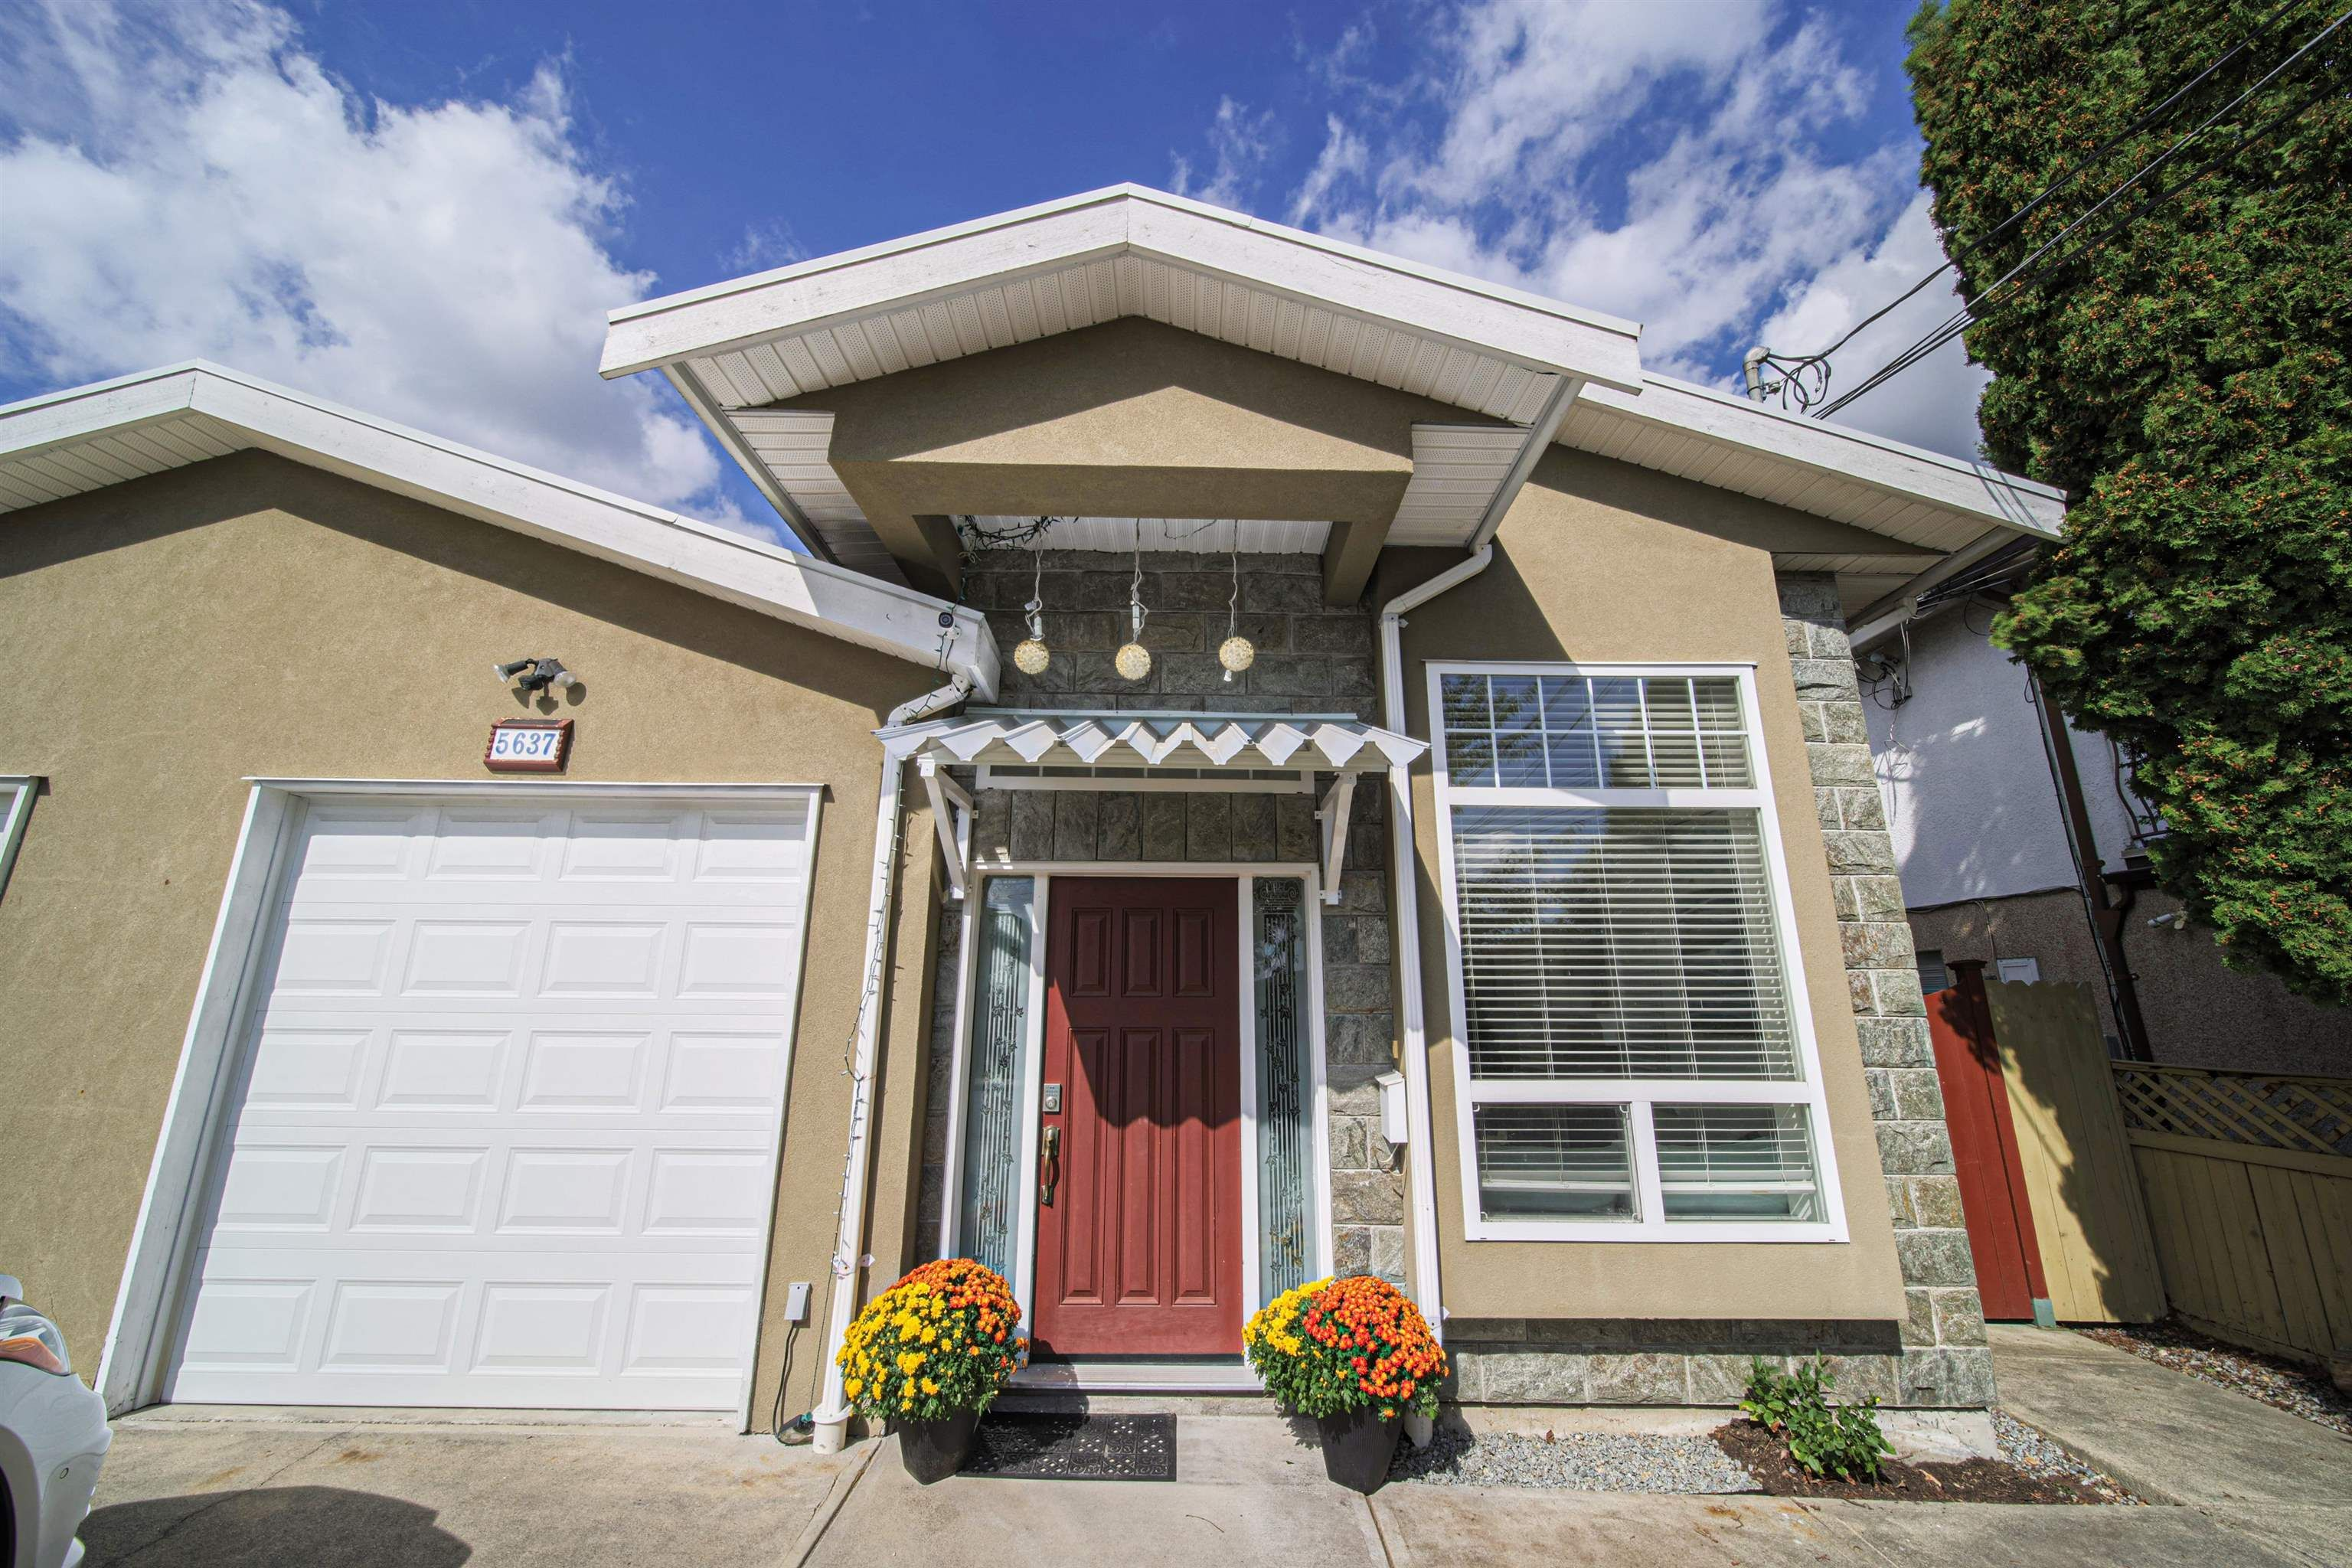 Main Photo: 5637 NEVILLE Street in Burnaby: South Slope 1/2 Duplex for sale (Burnaby South)  : MLS®# R2617929